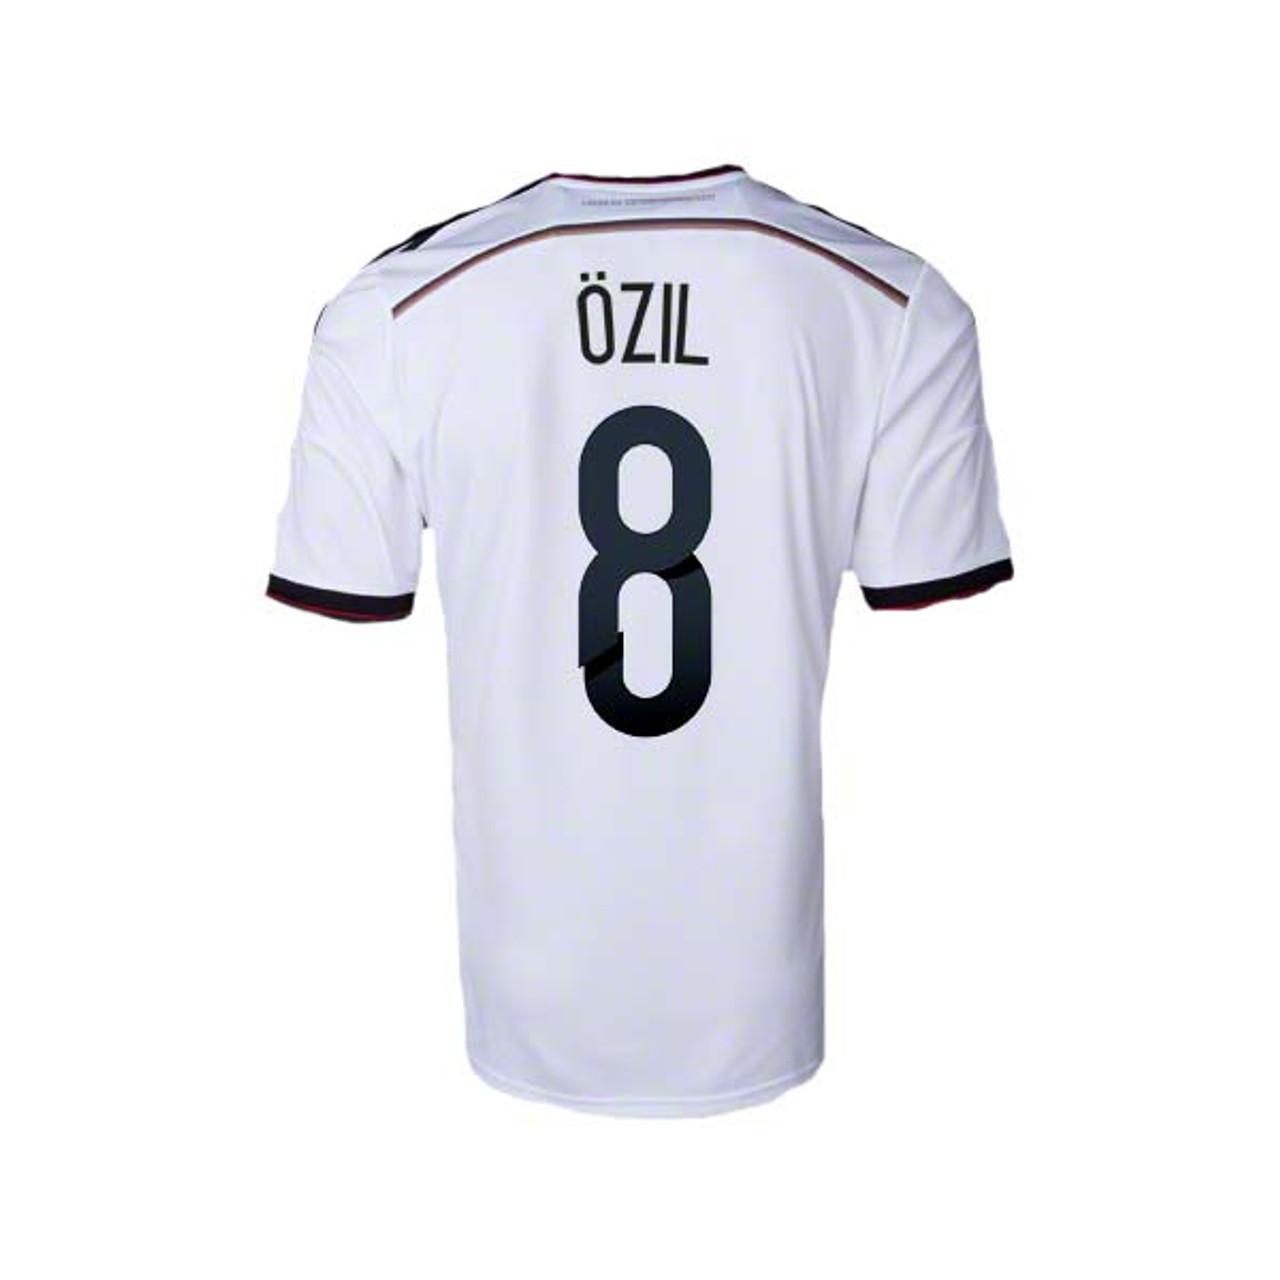 new arrival 118ff 9a918 ADIDAS GERMANY 2014 HOME `OZIL`JERSEY